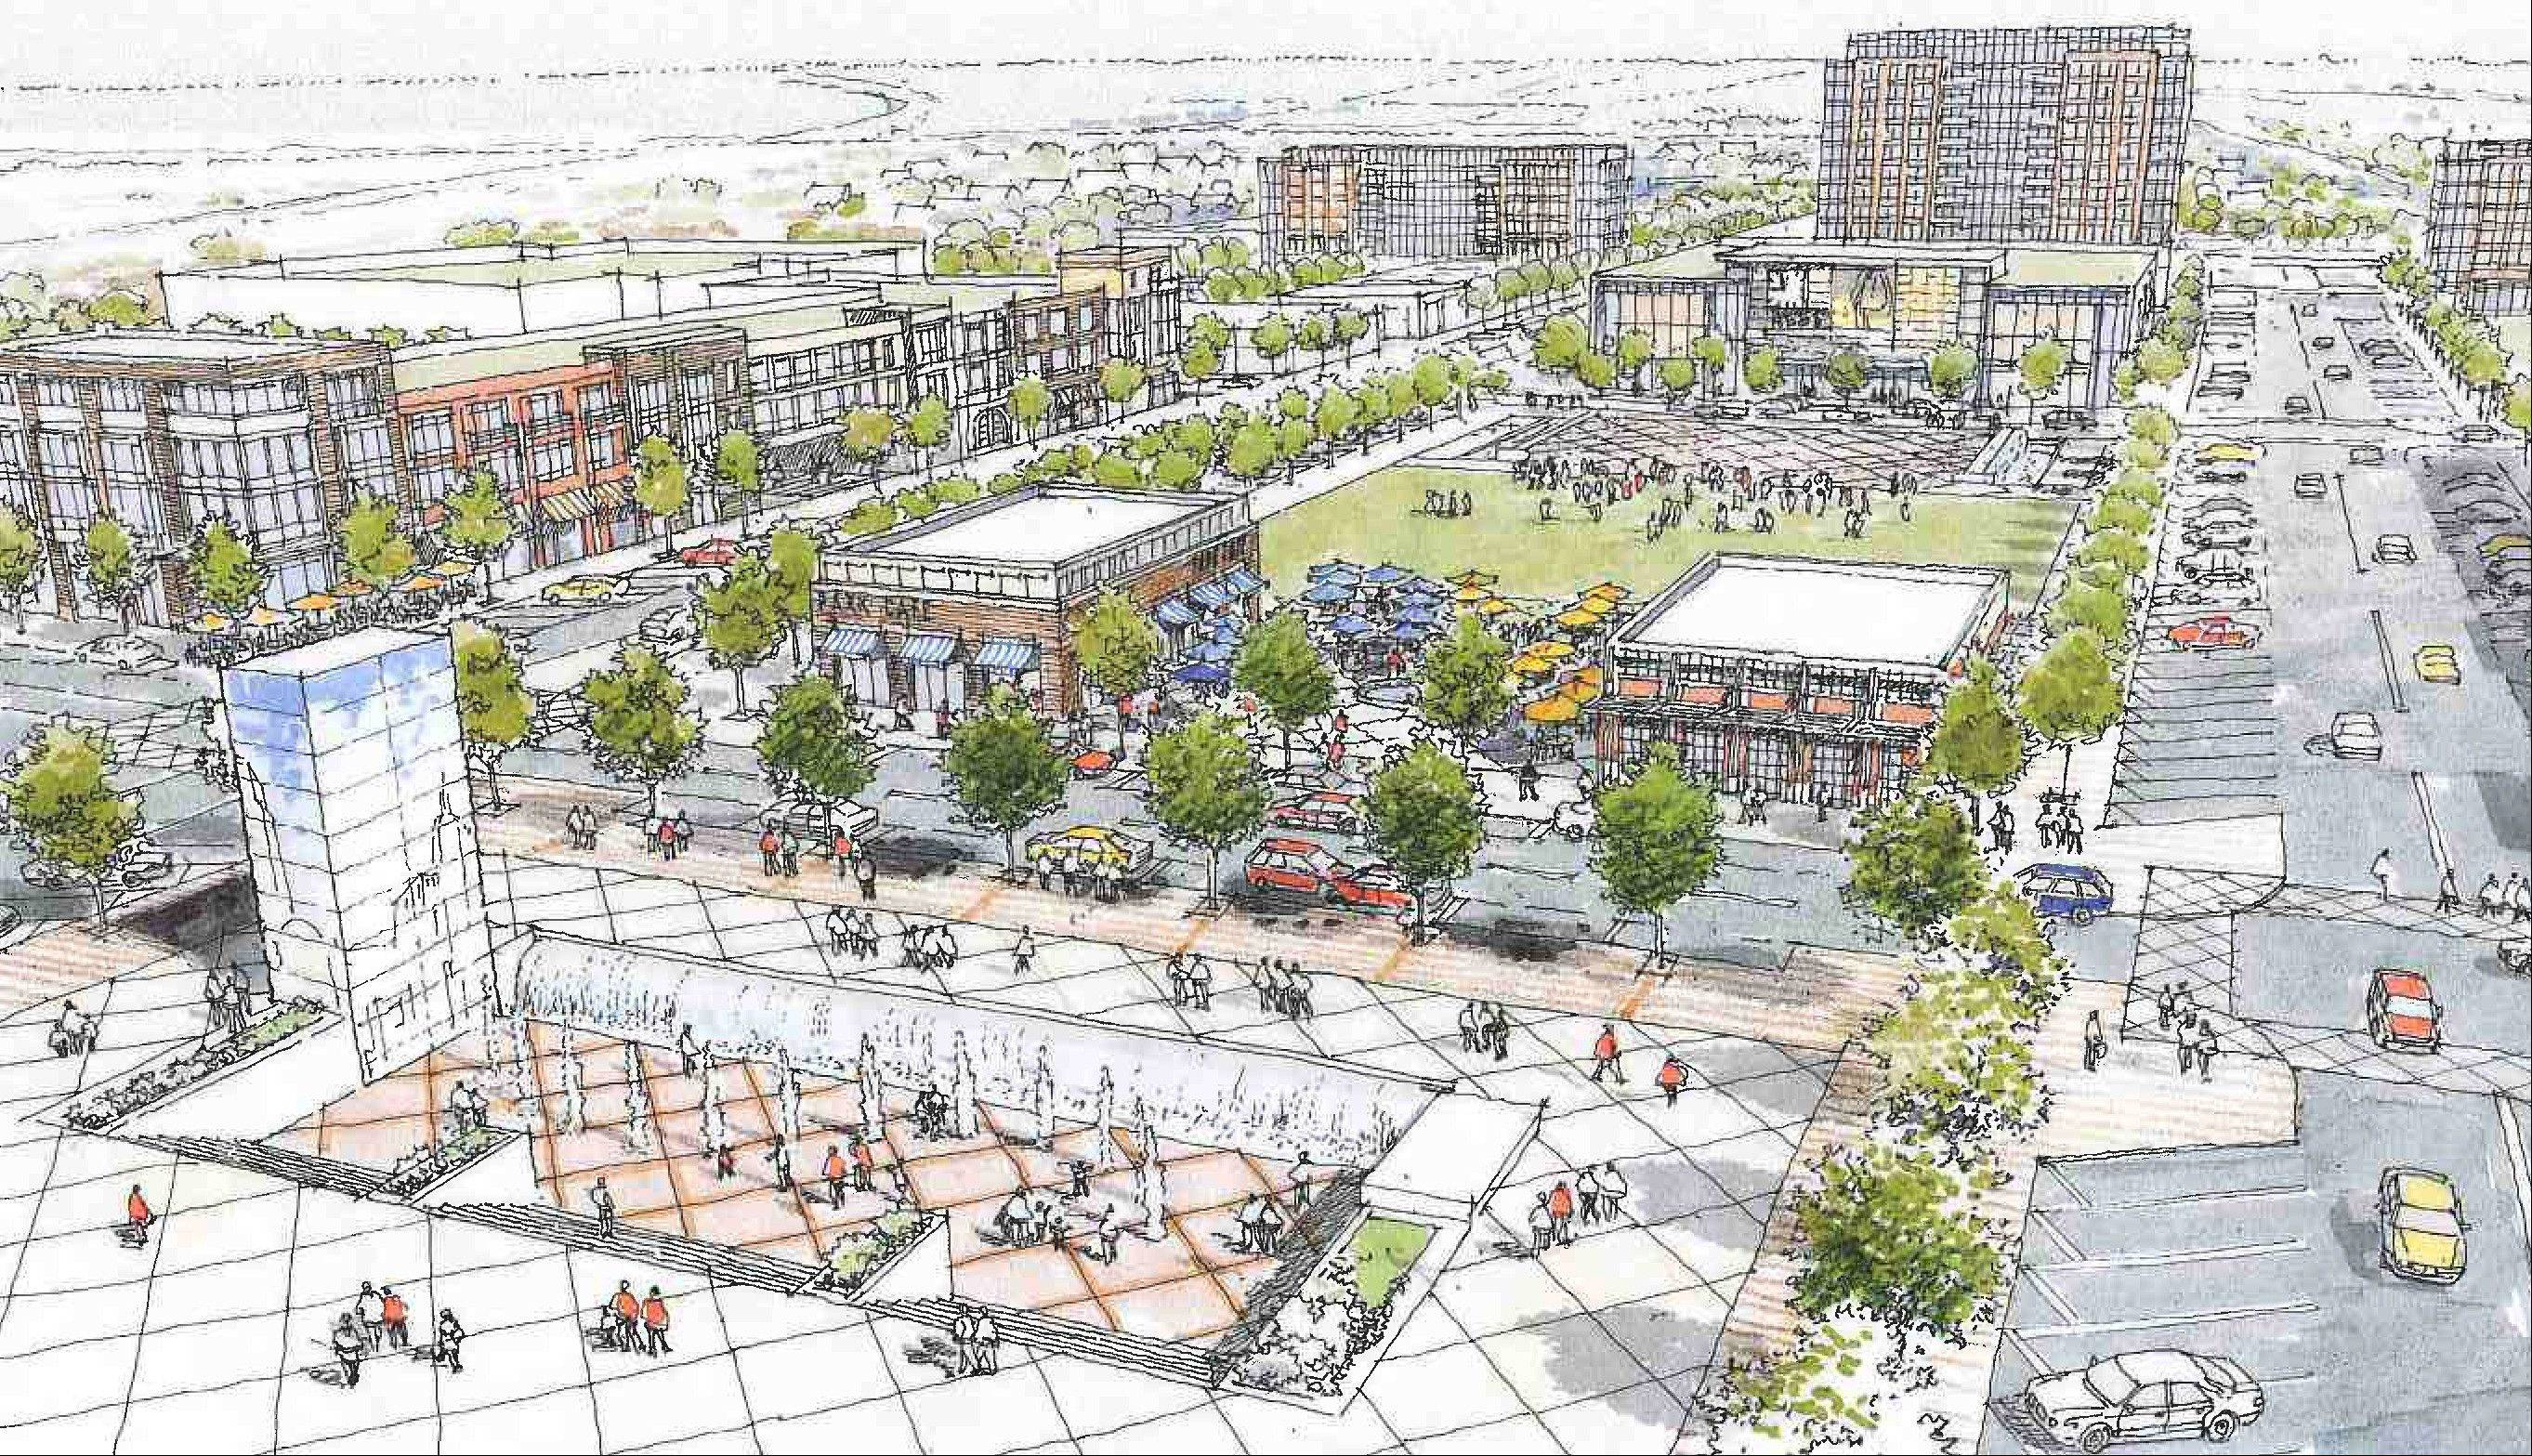 This is a sketch of what a proposed development in Buffalo Grove might look like.